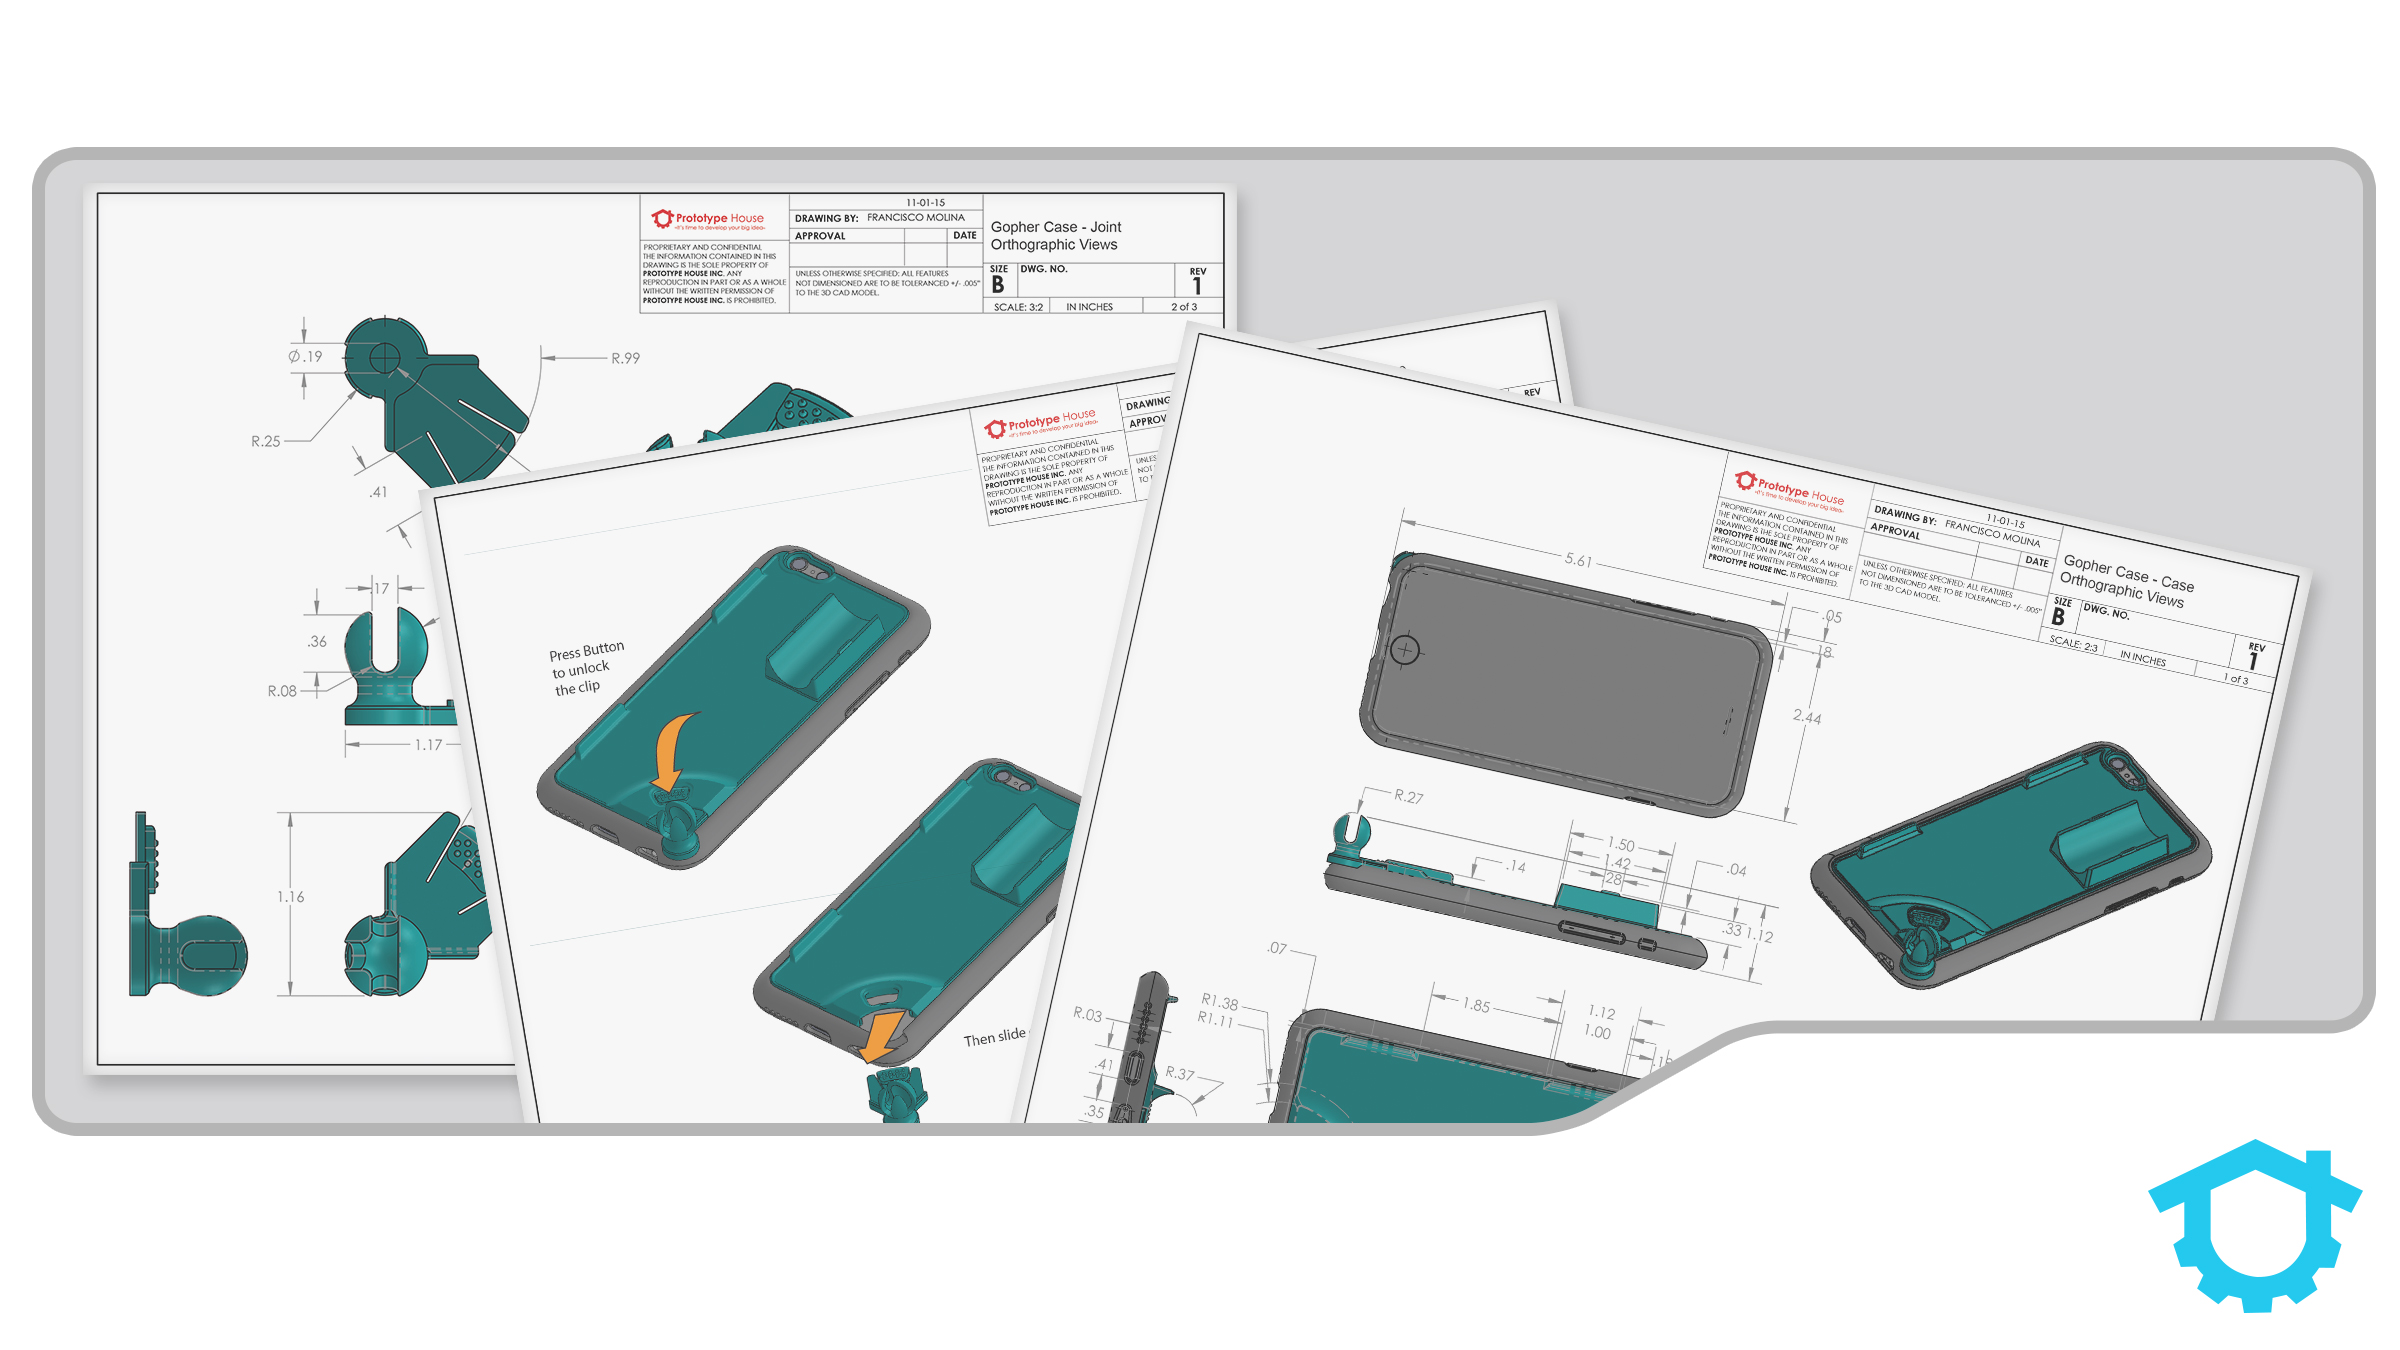 It's imperative you protect your invention. This image shows some drawings from our patent drafting process.